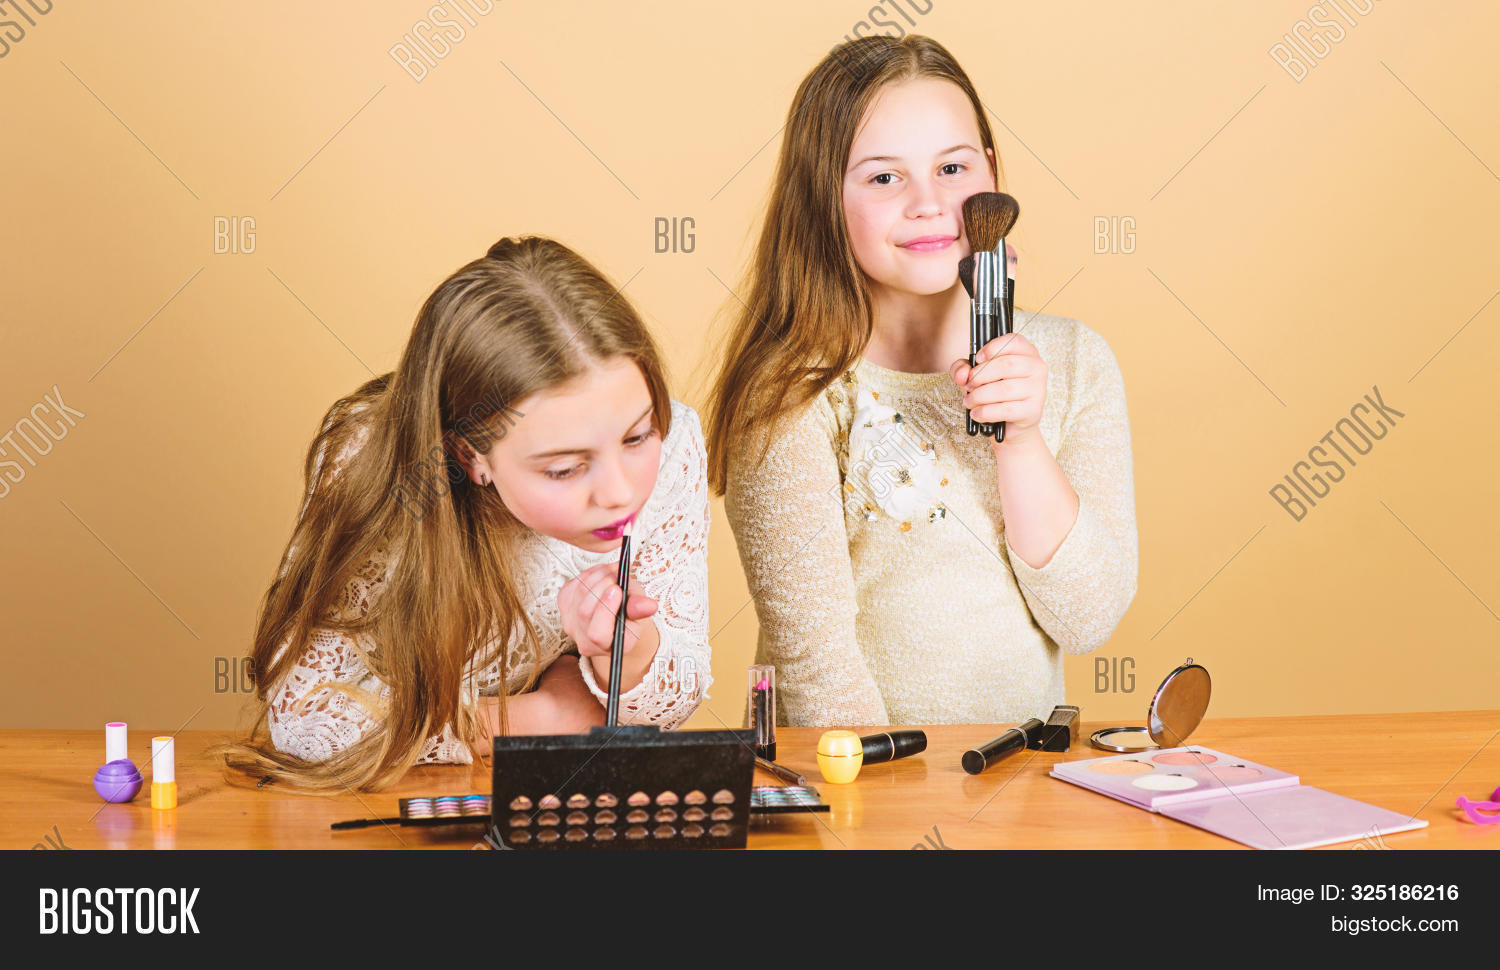 apply,art,bag,beauty,best,brush,care,caucasian,childhood,children,choose,concept,cosmetics,courses,creativity,cute,experimenting,explore,face,fashionable,girls,glamour,hygiene,just,kids,like,lip,lipstick,little,makeup,mascara,play,playing,product,professional,salon,shades,sisters,skill,small,store,style,tint,treatment,trend